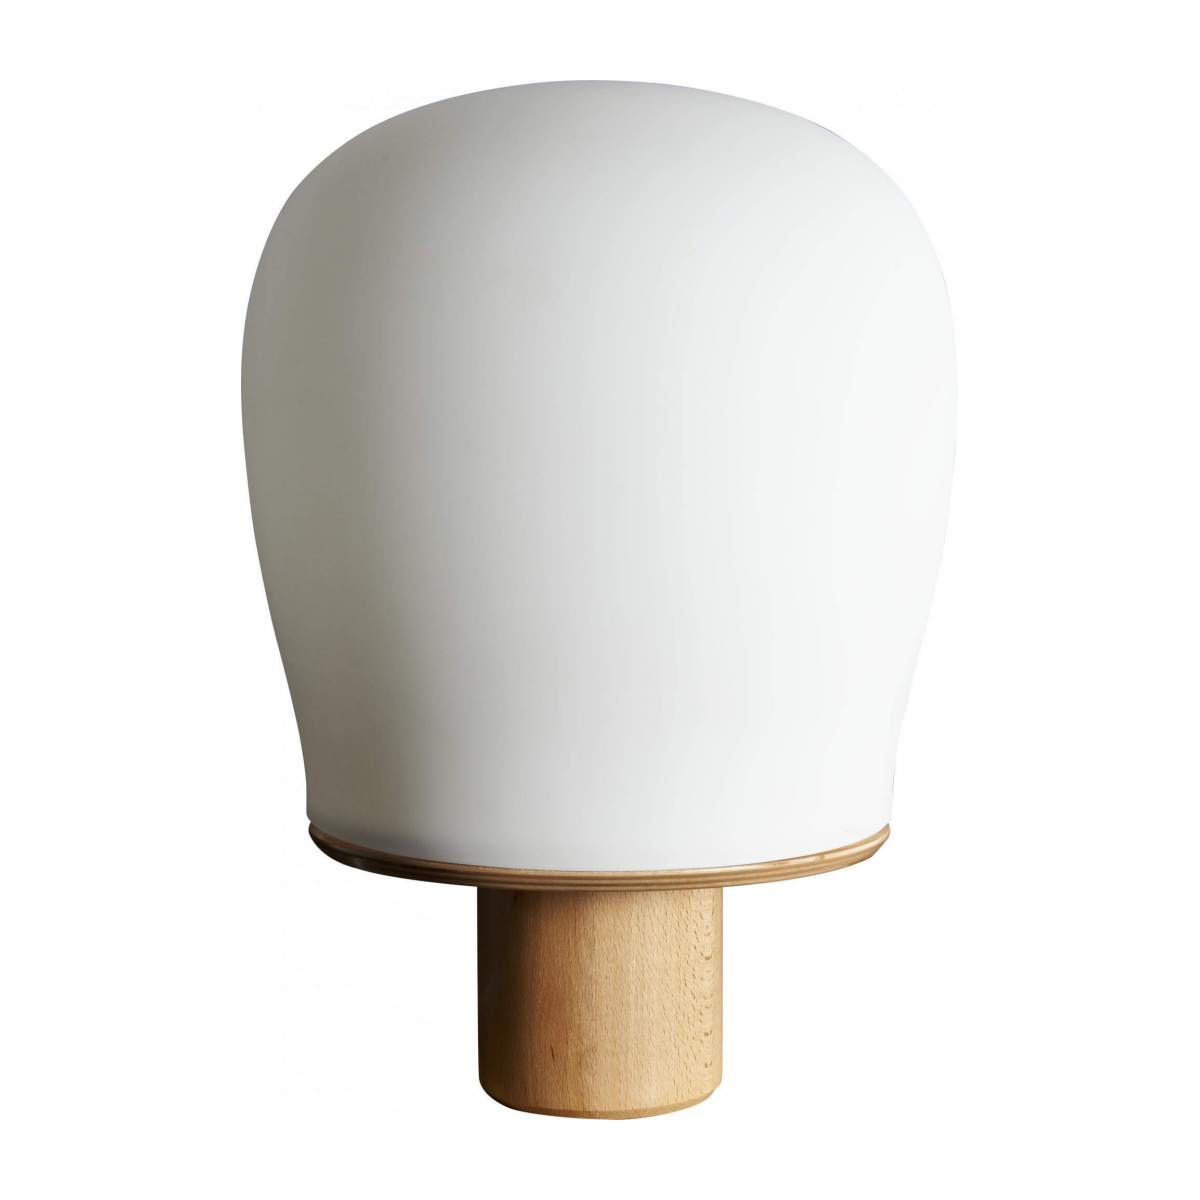 Oak frosted glass table lamp n°1